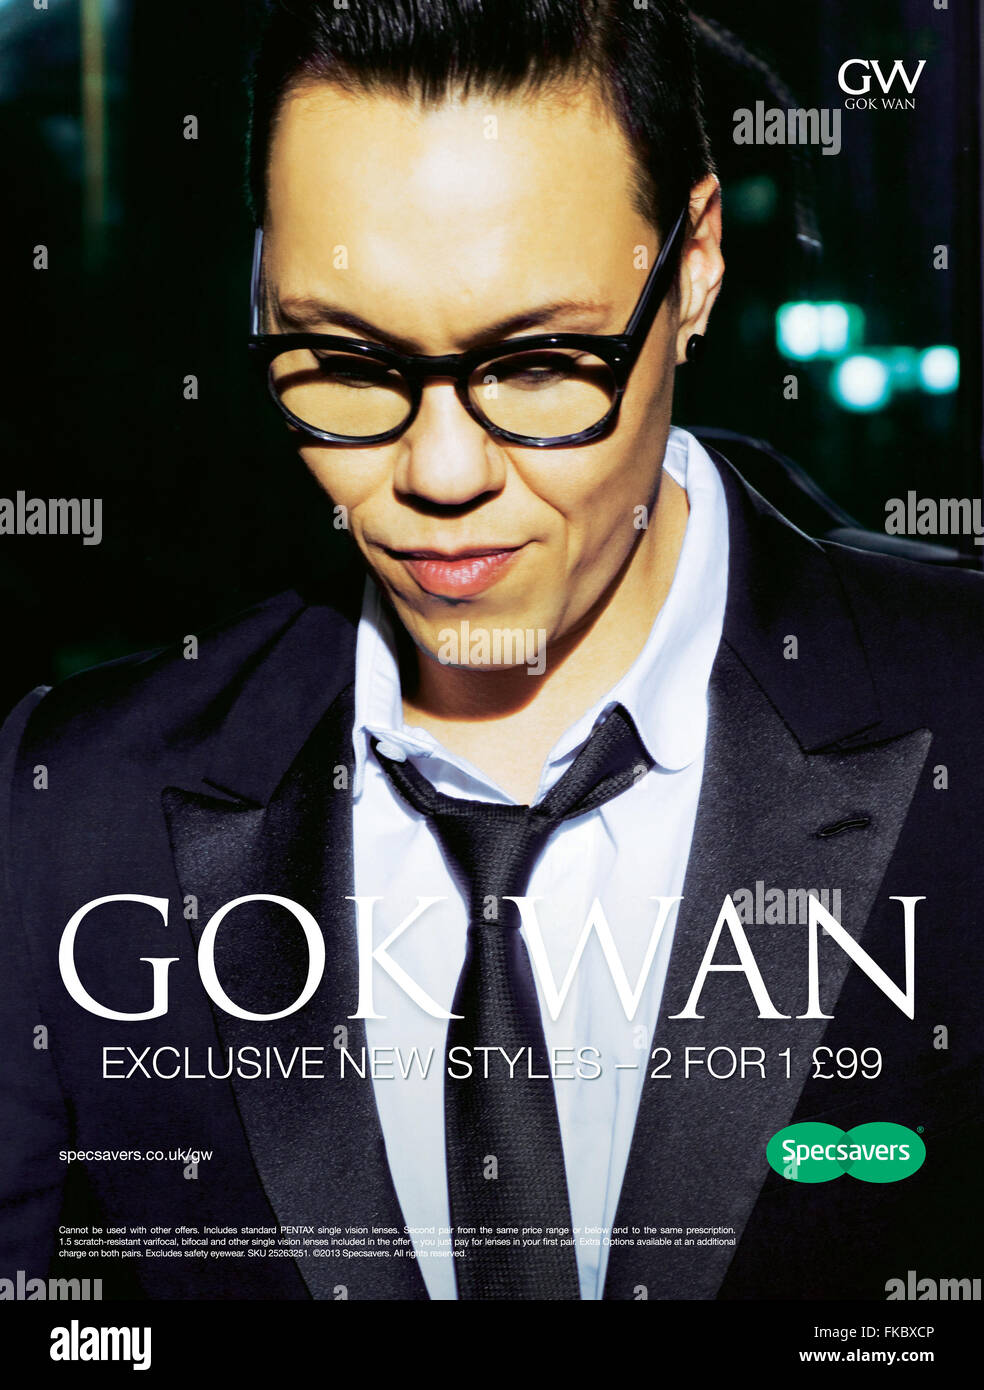 2010s uk specsavers magazine advert stock photo royalty 2010s uk specsavers magazine advert